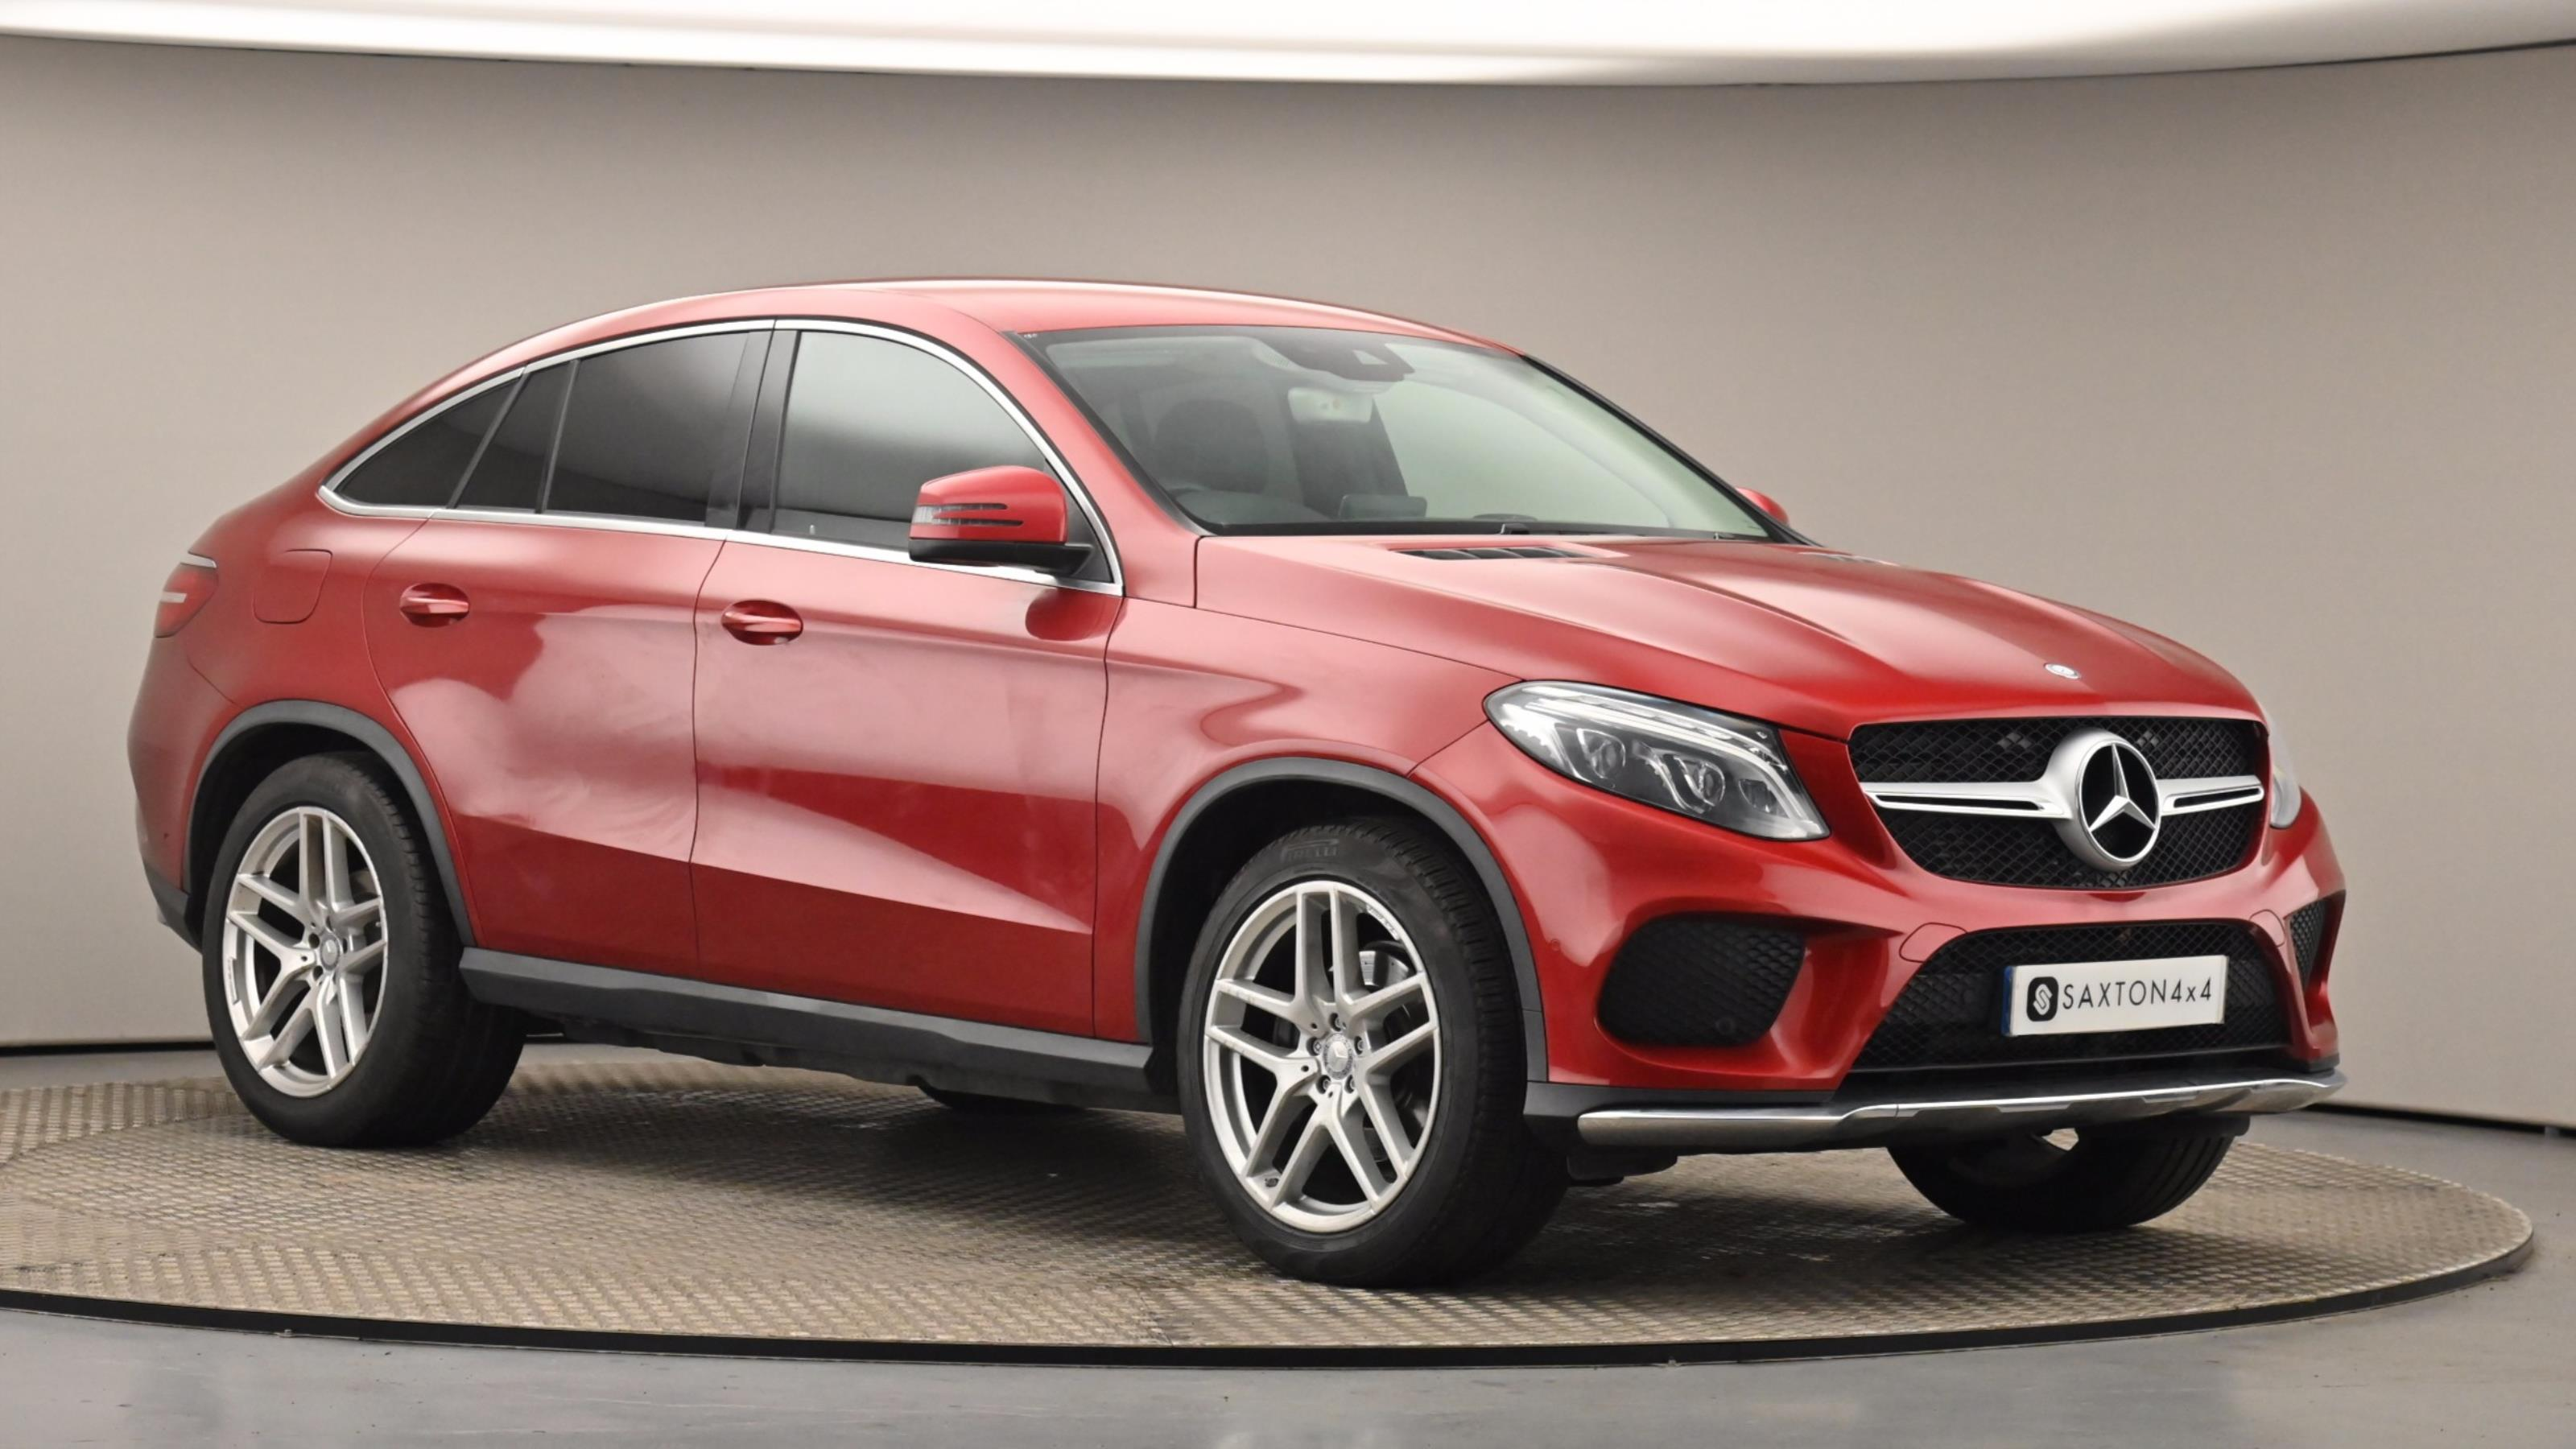 Used 2016 Mercedes-Benz GLE COUPE GLE 350d 4Matic AMG Line 5dr 9G-Tronic RED at Saxton4x4